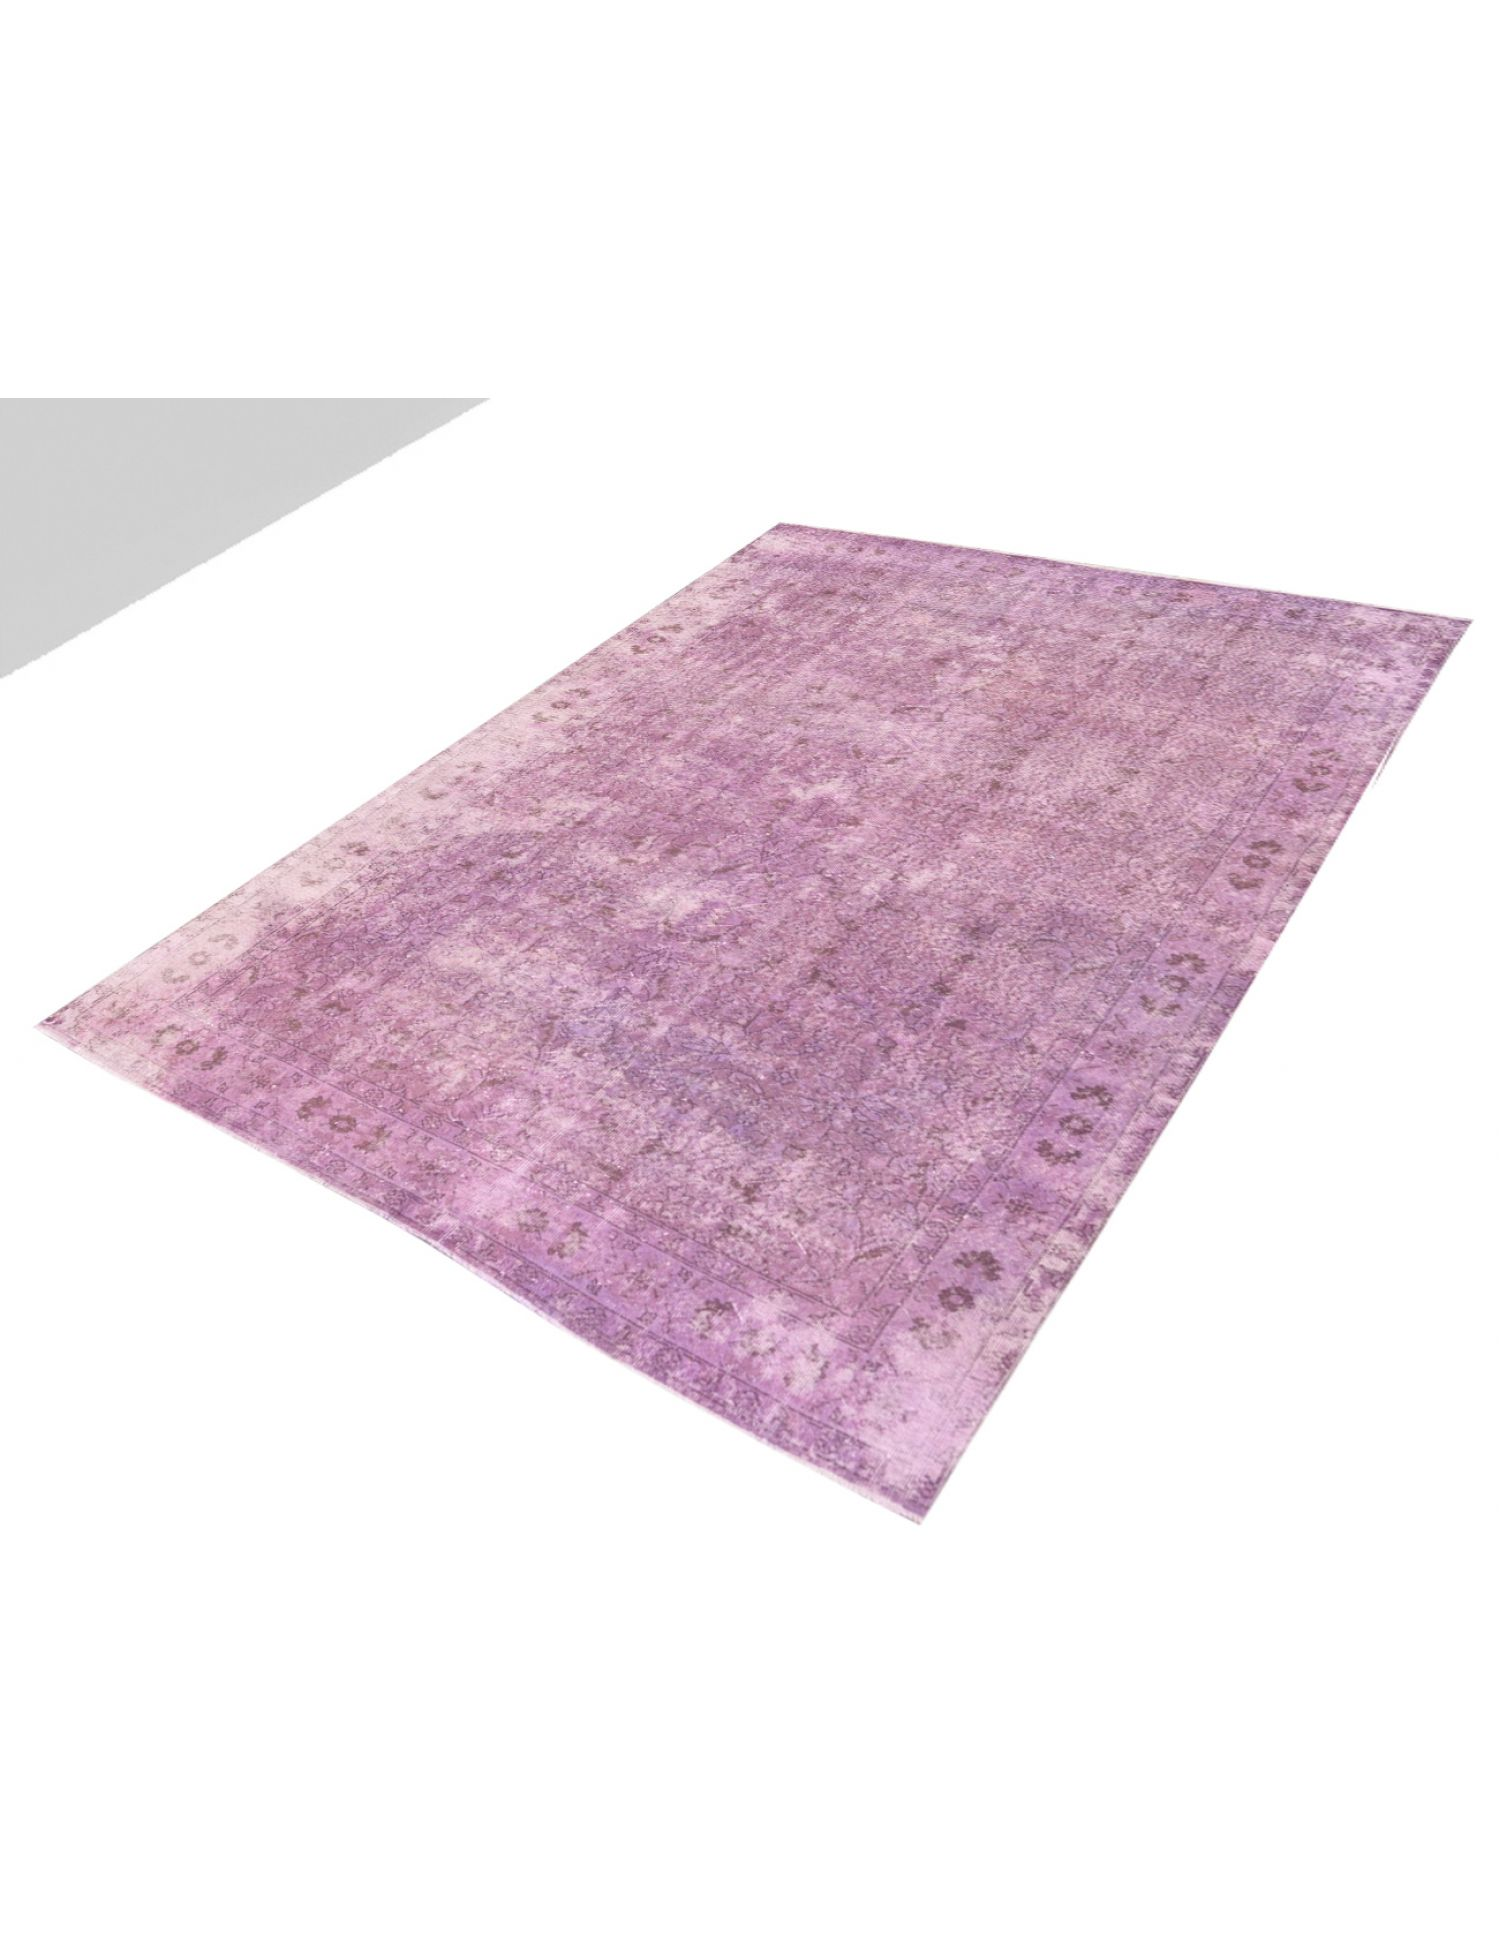 Vintage Carpet  purple <br/>290 x 187 cm